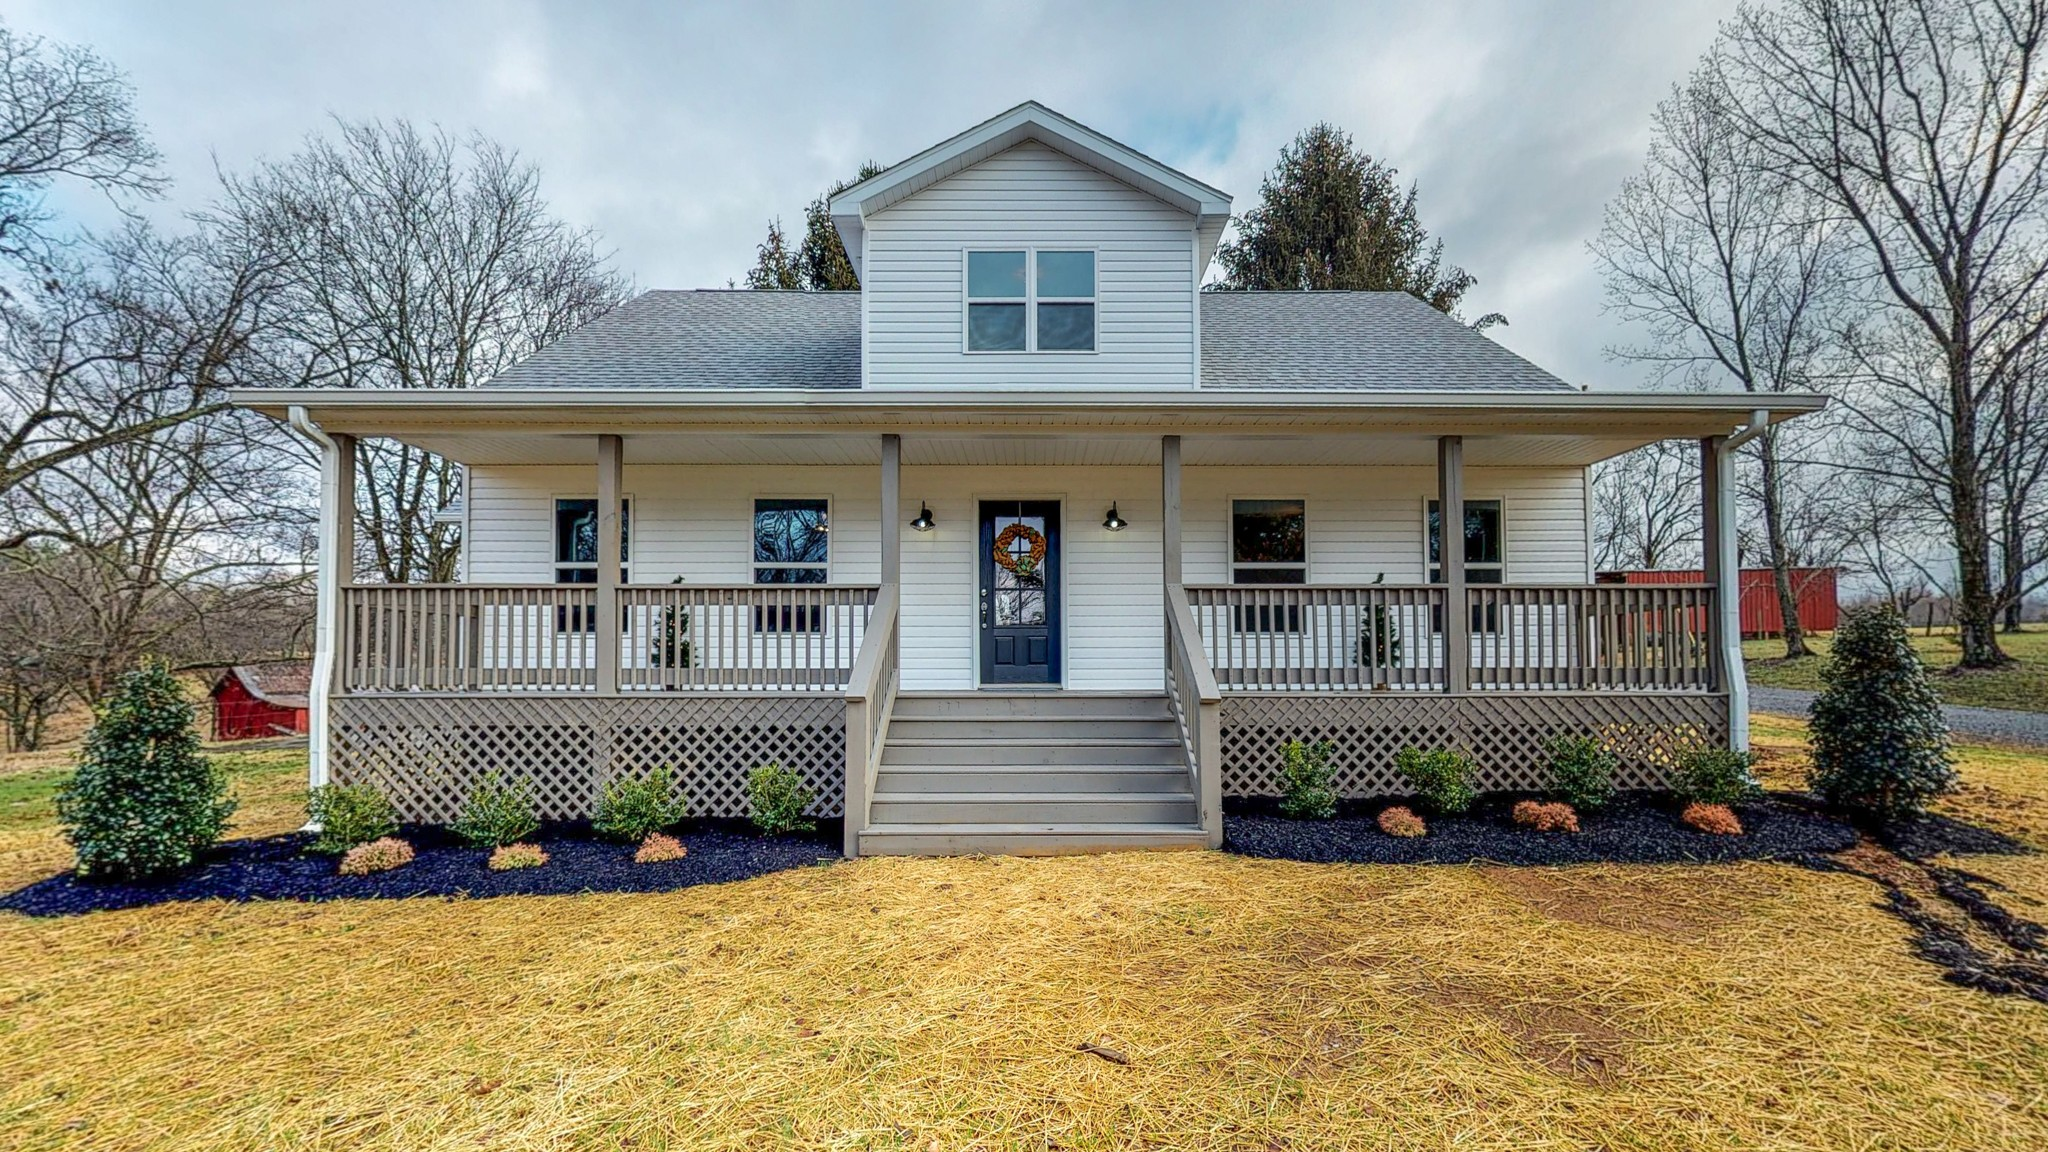 4713 S Old Hwy 31W, Cottontown, TN 37048 - Cottontown, TN real estate listing